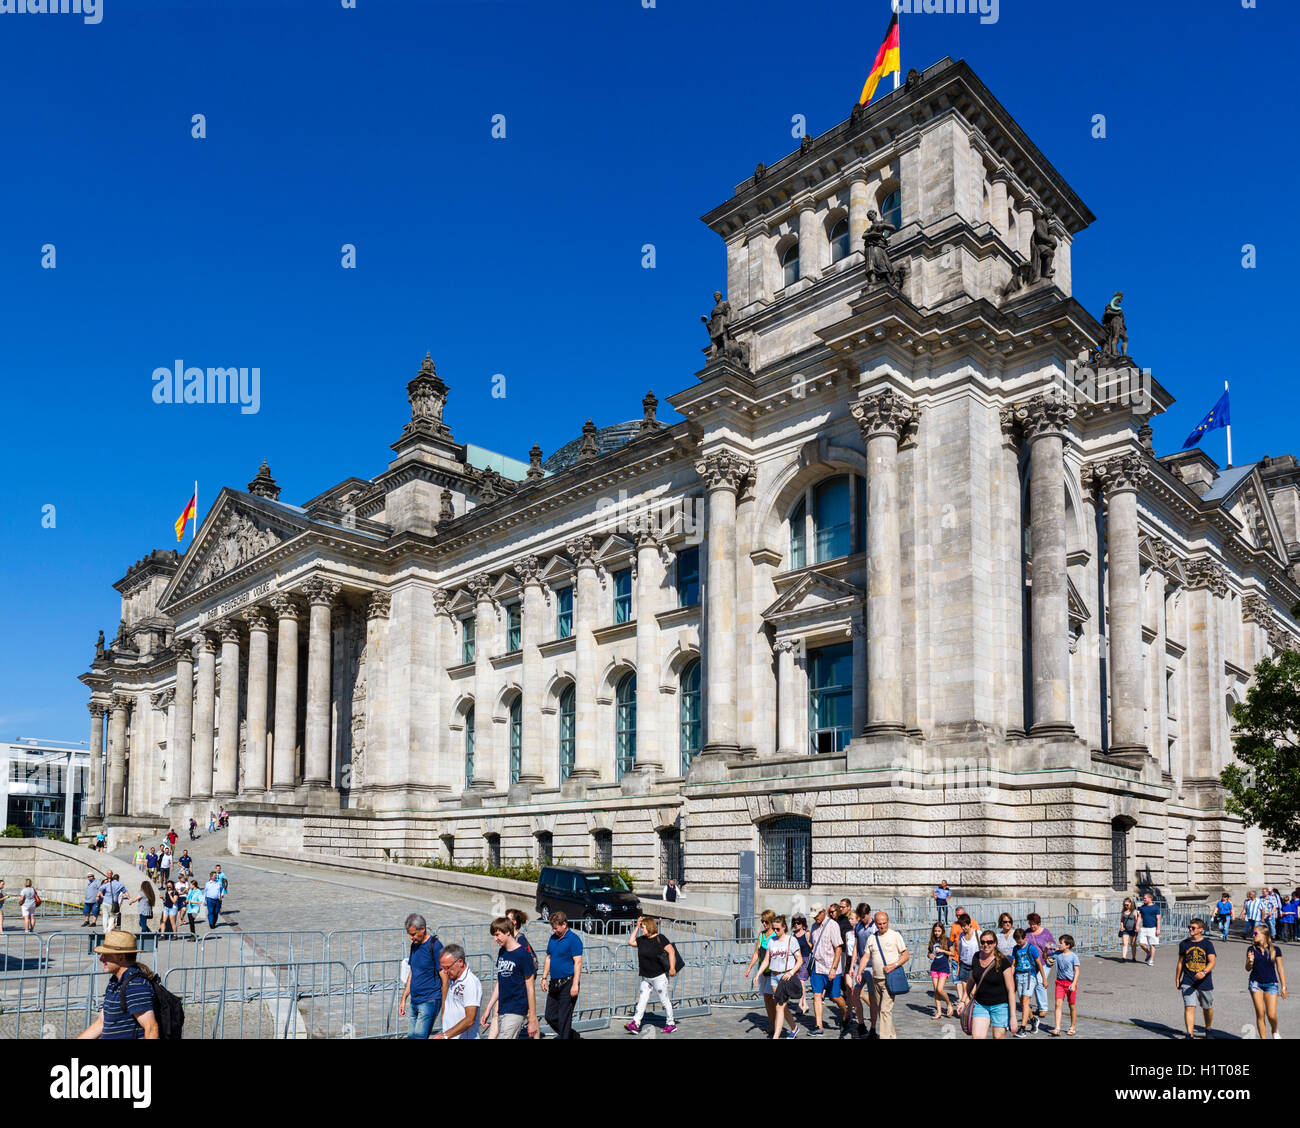 Le bâtiment du Reichstag, Berlin, Allemagne Photo Stock